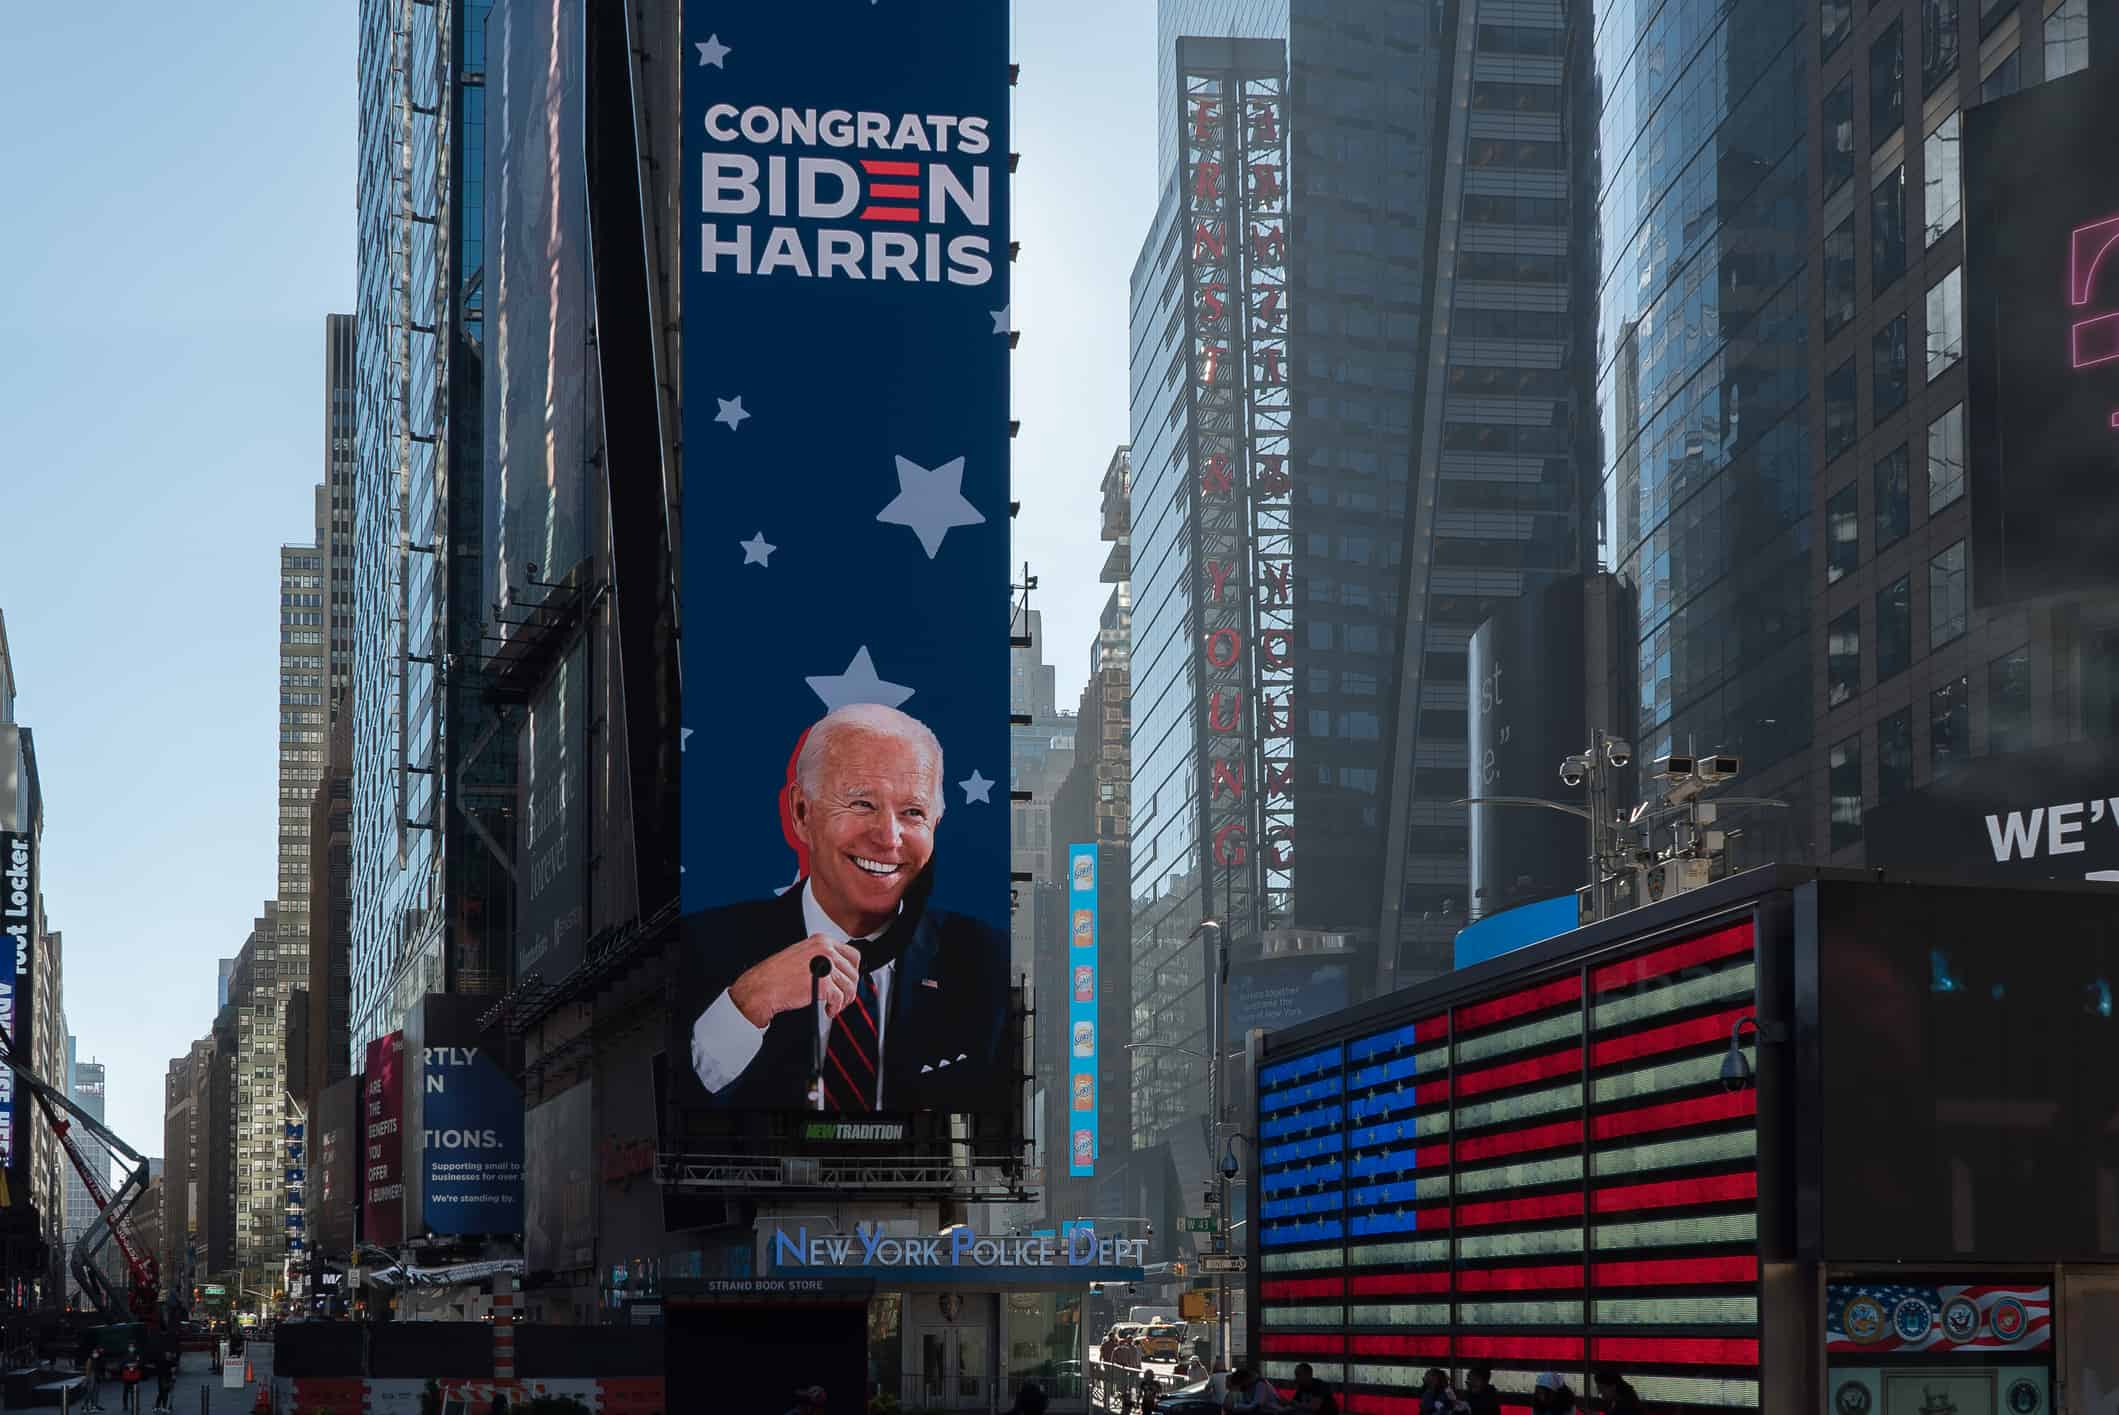 How a Biden Administration Might Impact HR and the Workplace